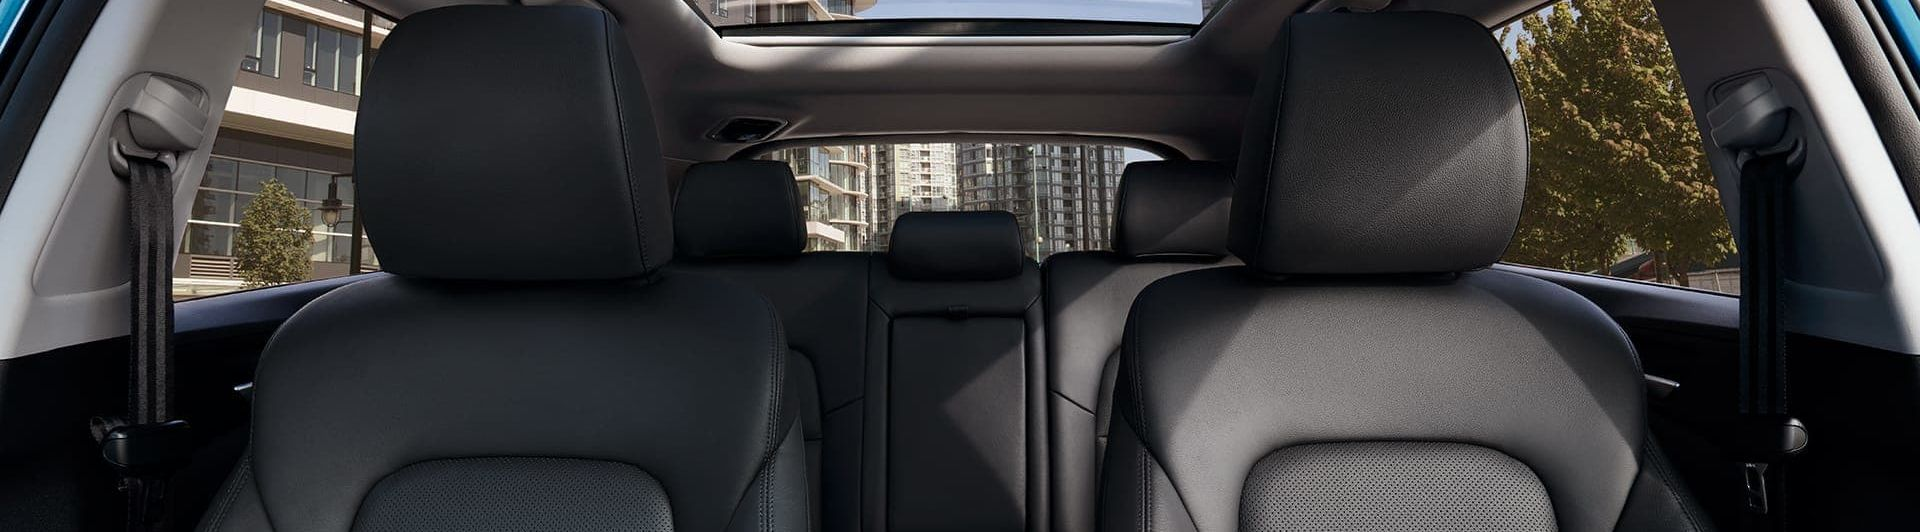 2019 Tucson Seating